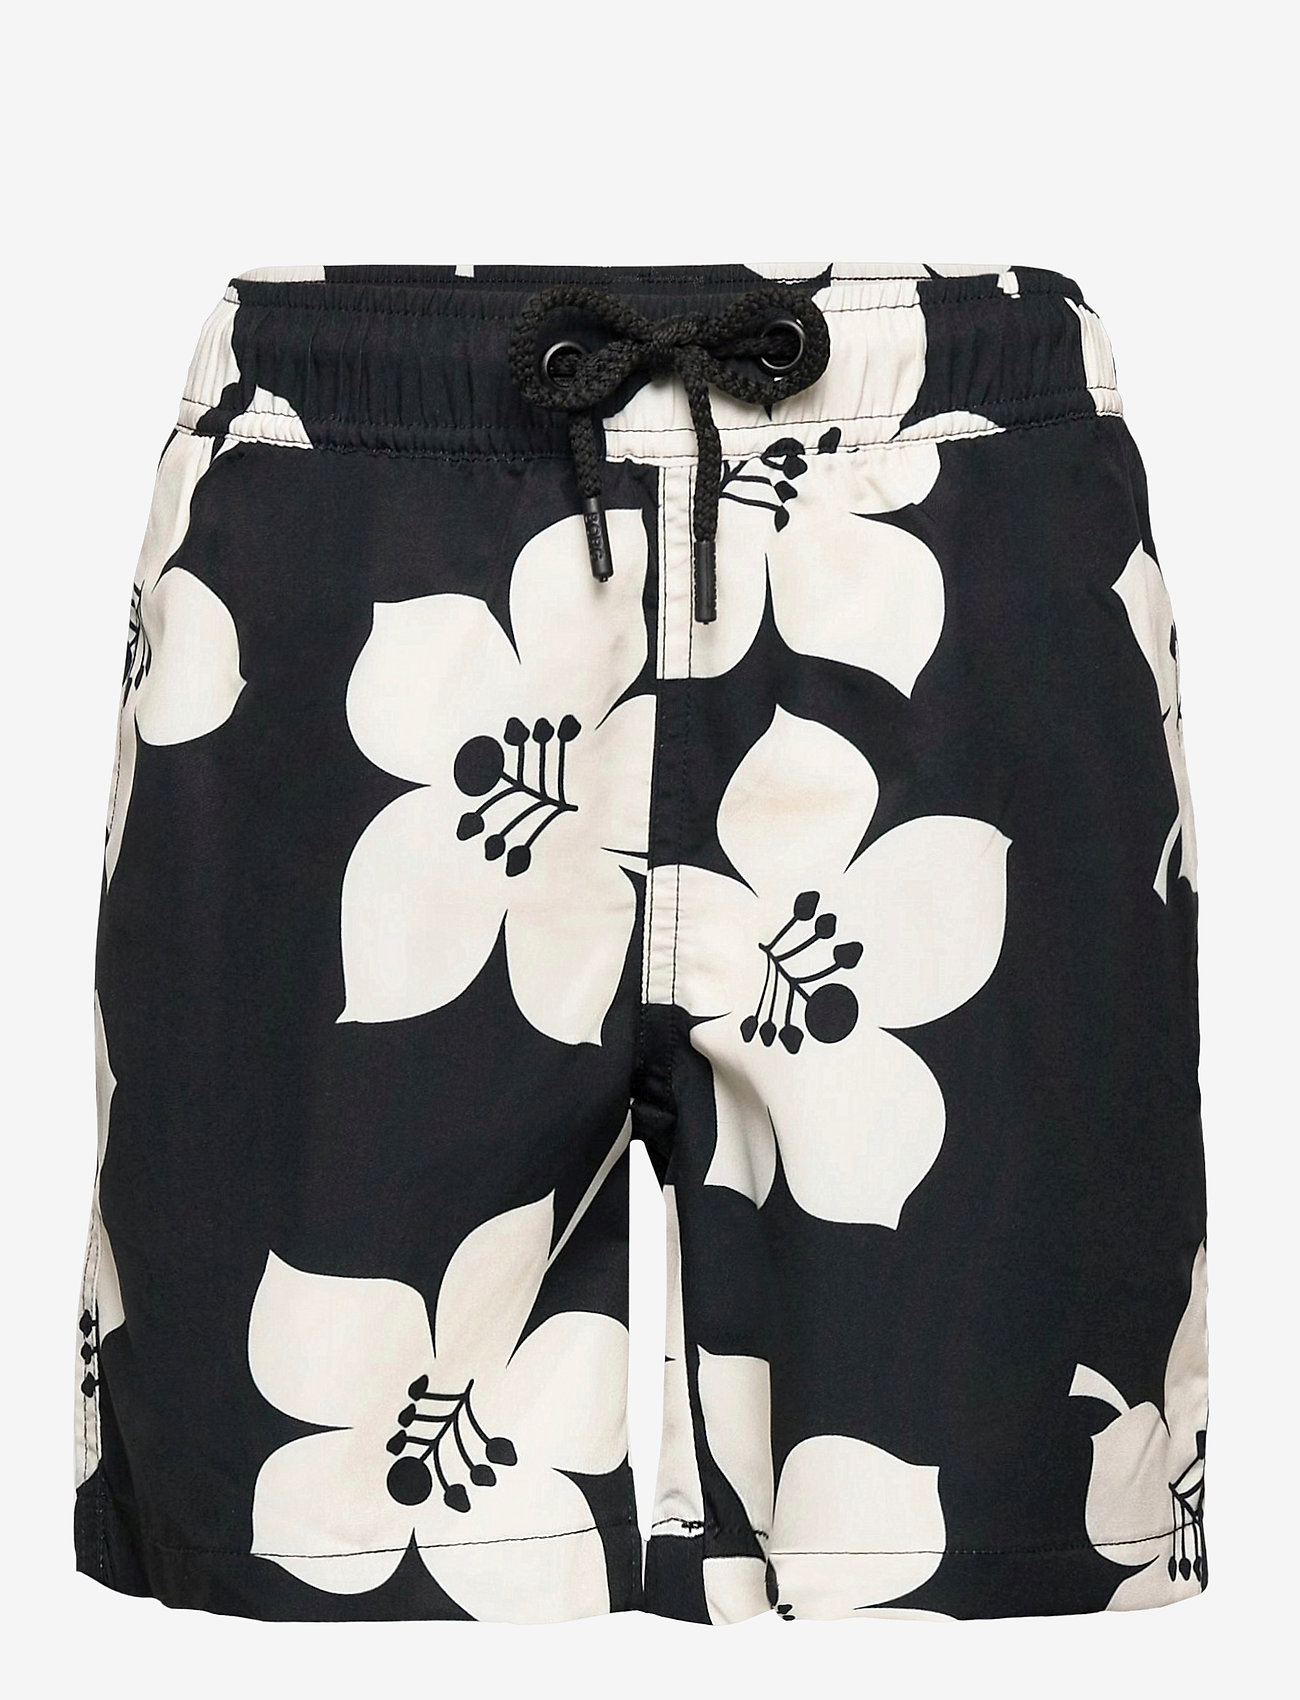 Björn Borg - LOOSE SHORTS KENNY KENNY - bademode - bb graphic floral black beauty - 1